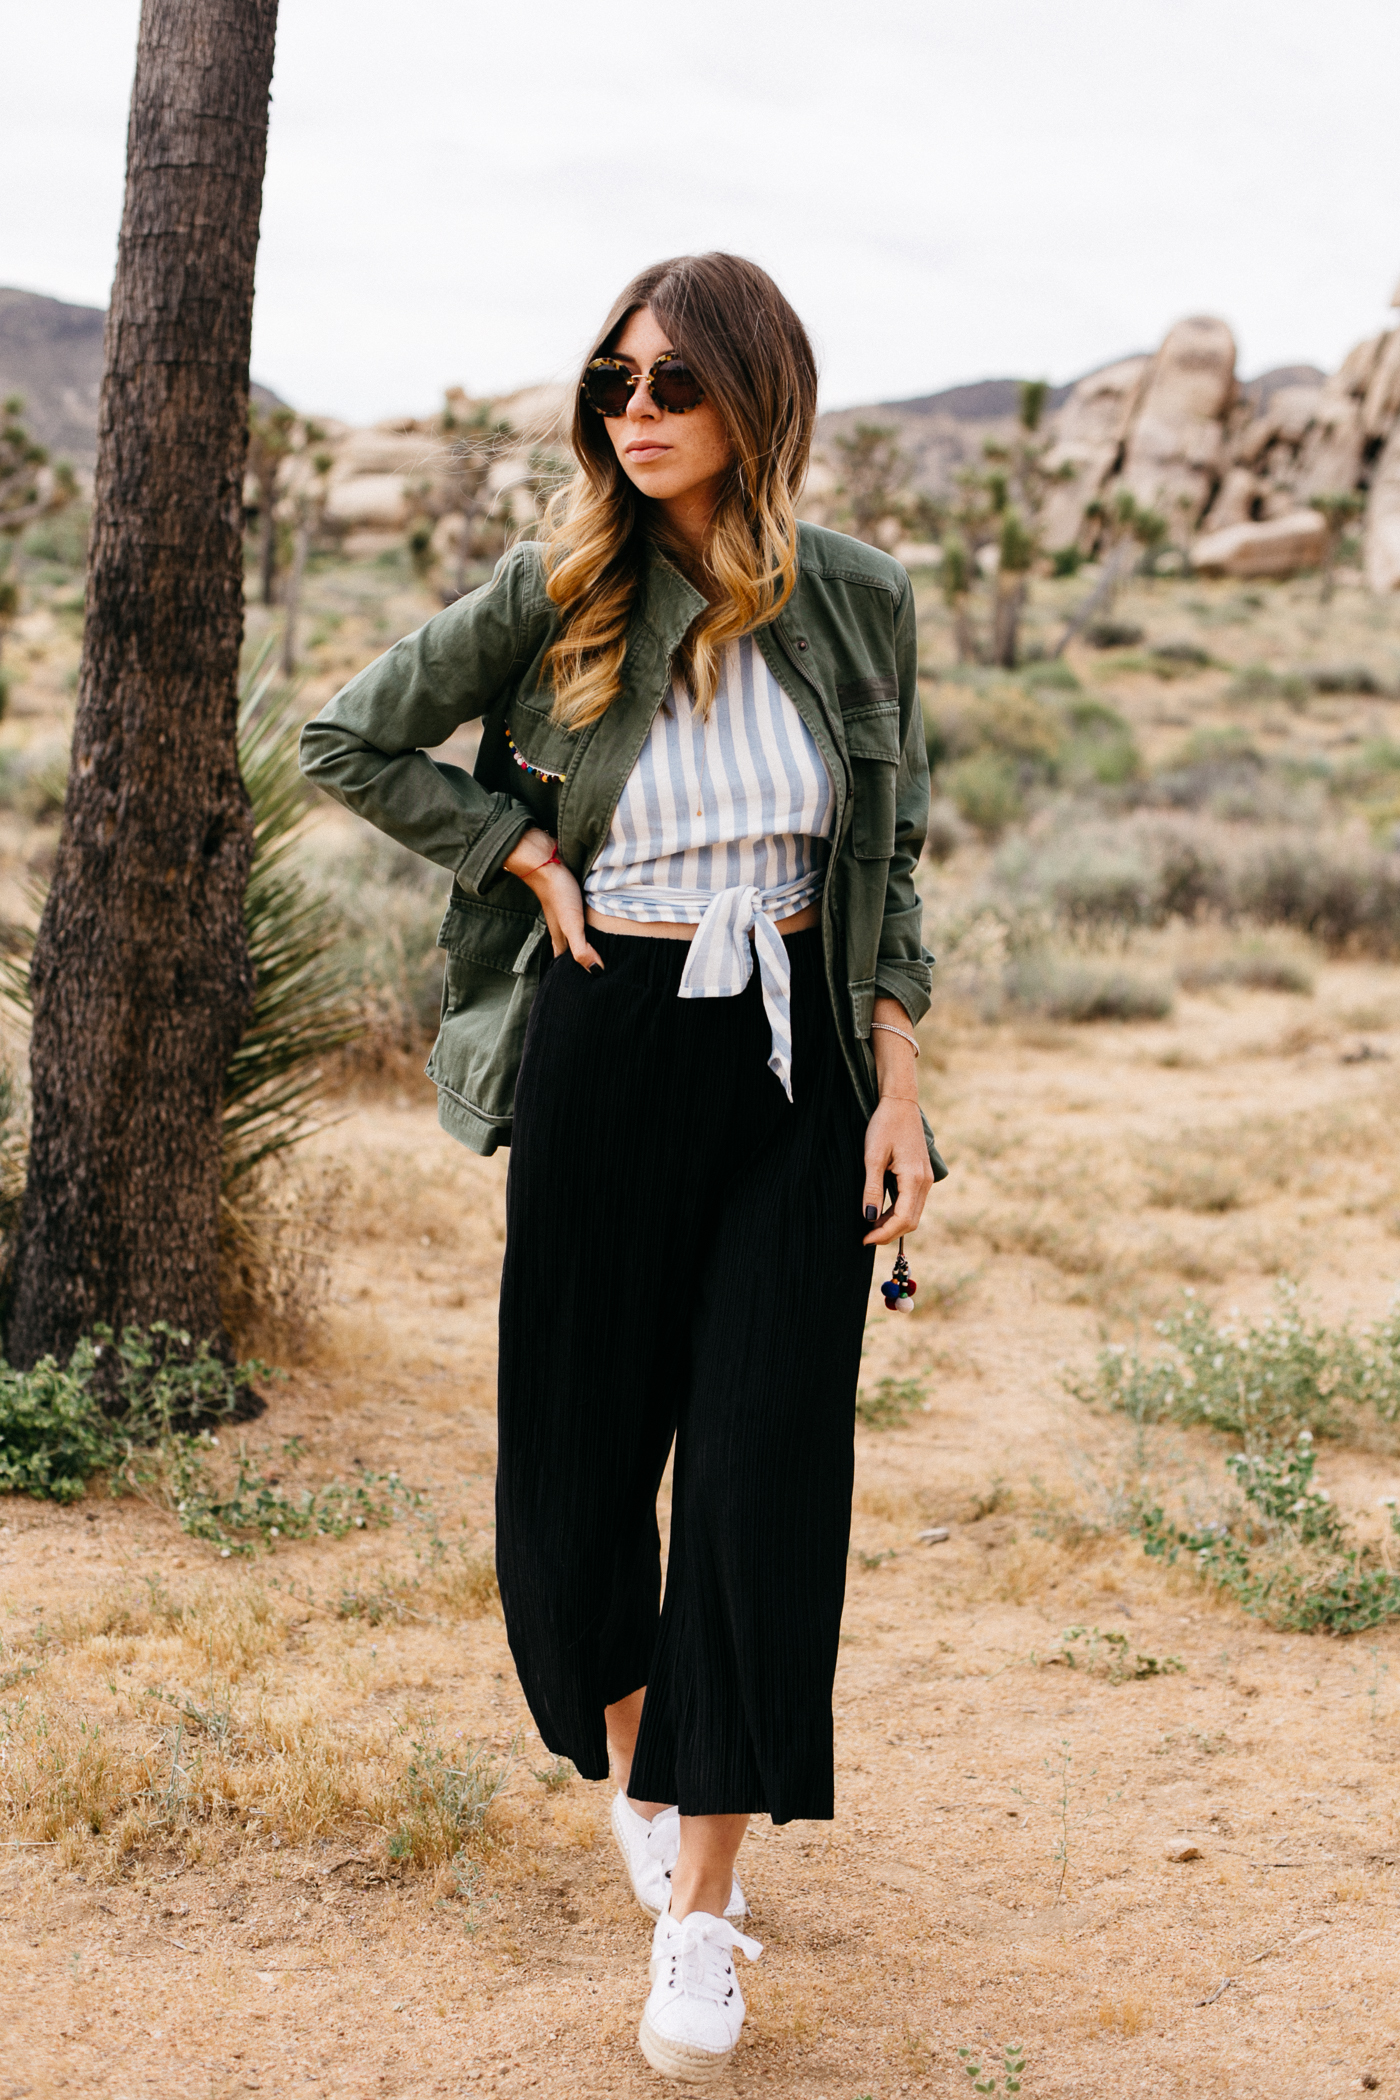 Joshua Tree National Park Outfit | Bikinis & Passports